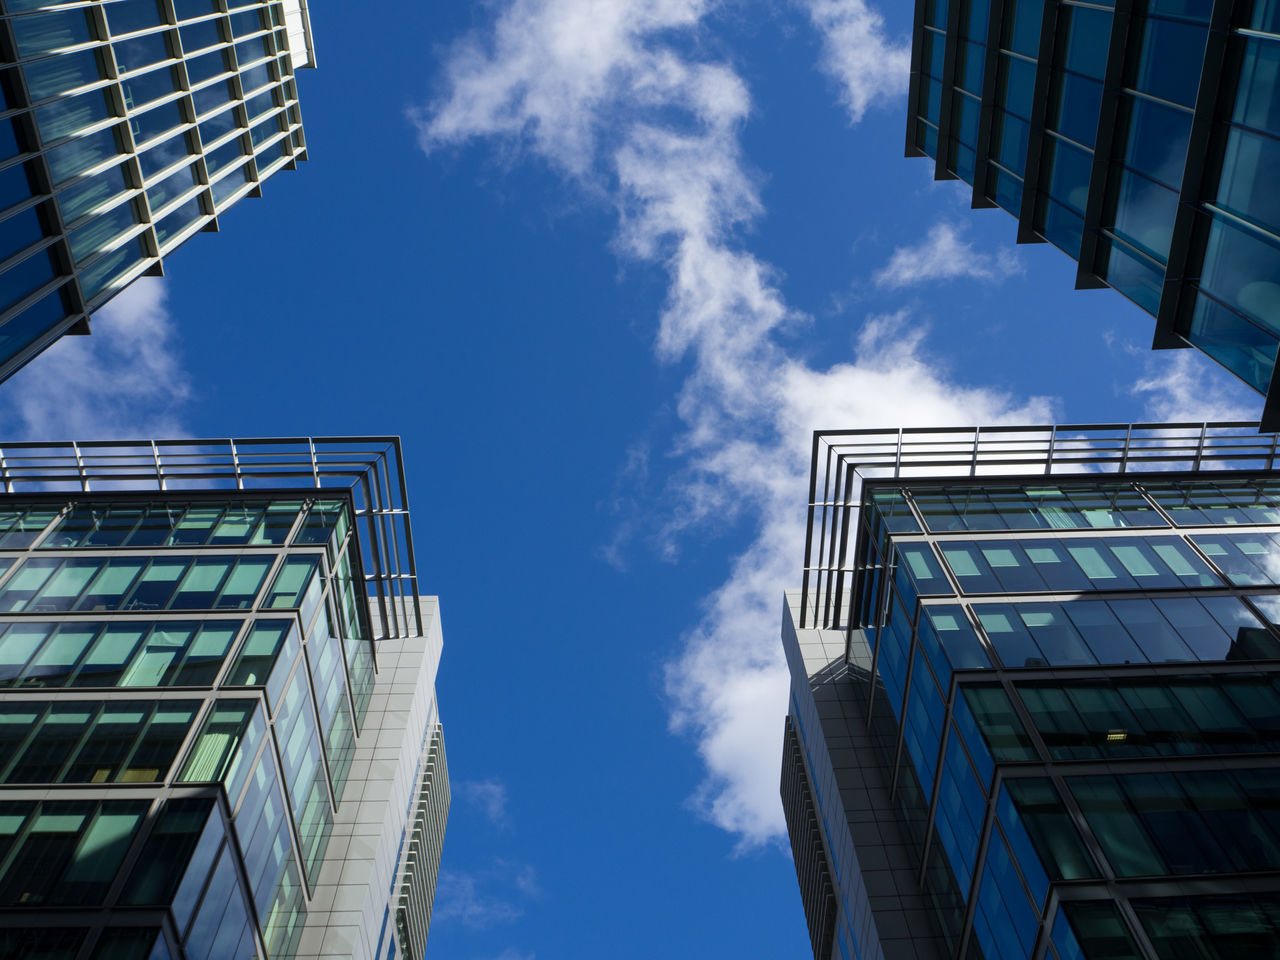 low angle view, sky, architecture, cloud - sky, built structure, building exterior, day, no people, outdoors, sunlight, blue, skyscraper, modern